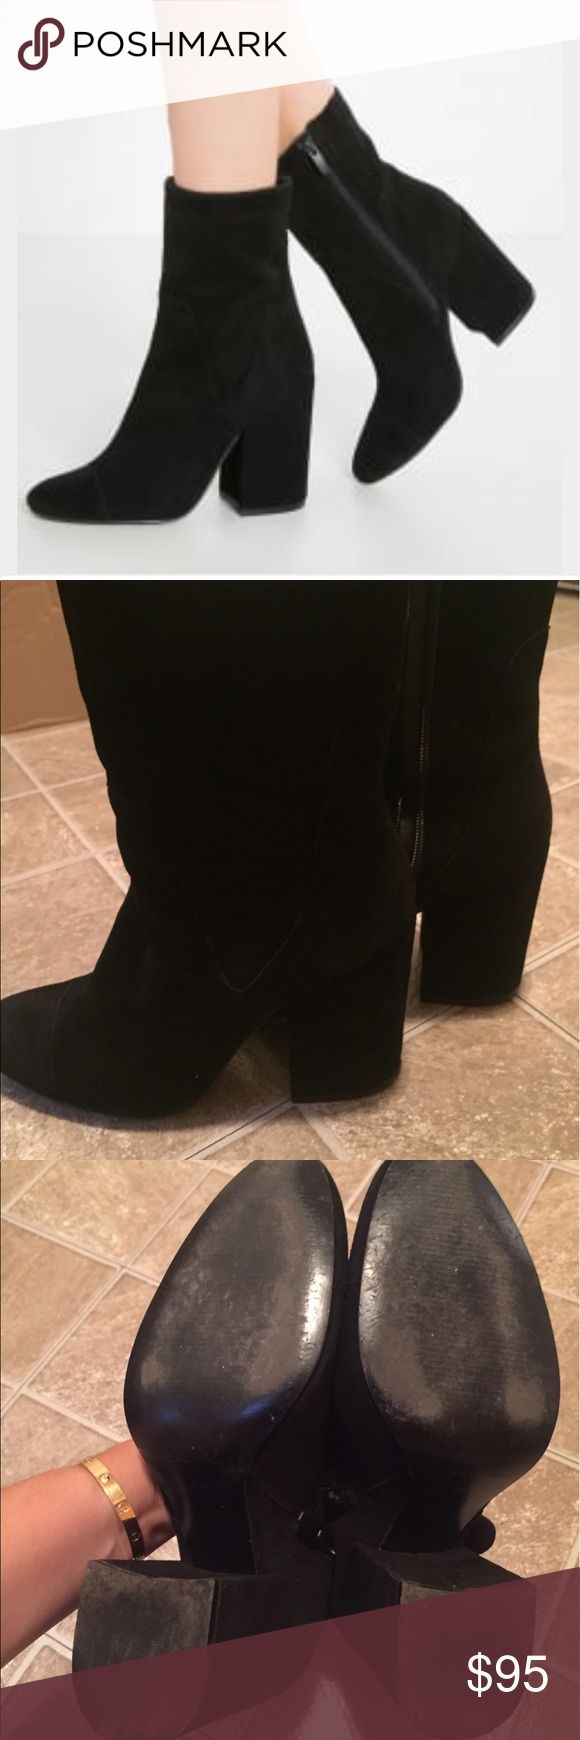 Kendall Kylie black suede boots Suede leather black super comfortable booties. Excellent condition, minor leather imperfections on the heels that I tried to capture on the pic. Not visible unless u look at it closely. Heel tips are still 98% full.  Worn few times. Price is FINAL AND FIRM!!! FIRM!! Kendall & Kylie Shoes Ankle Boots & Booties